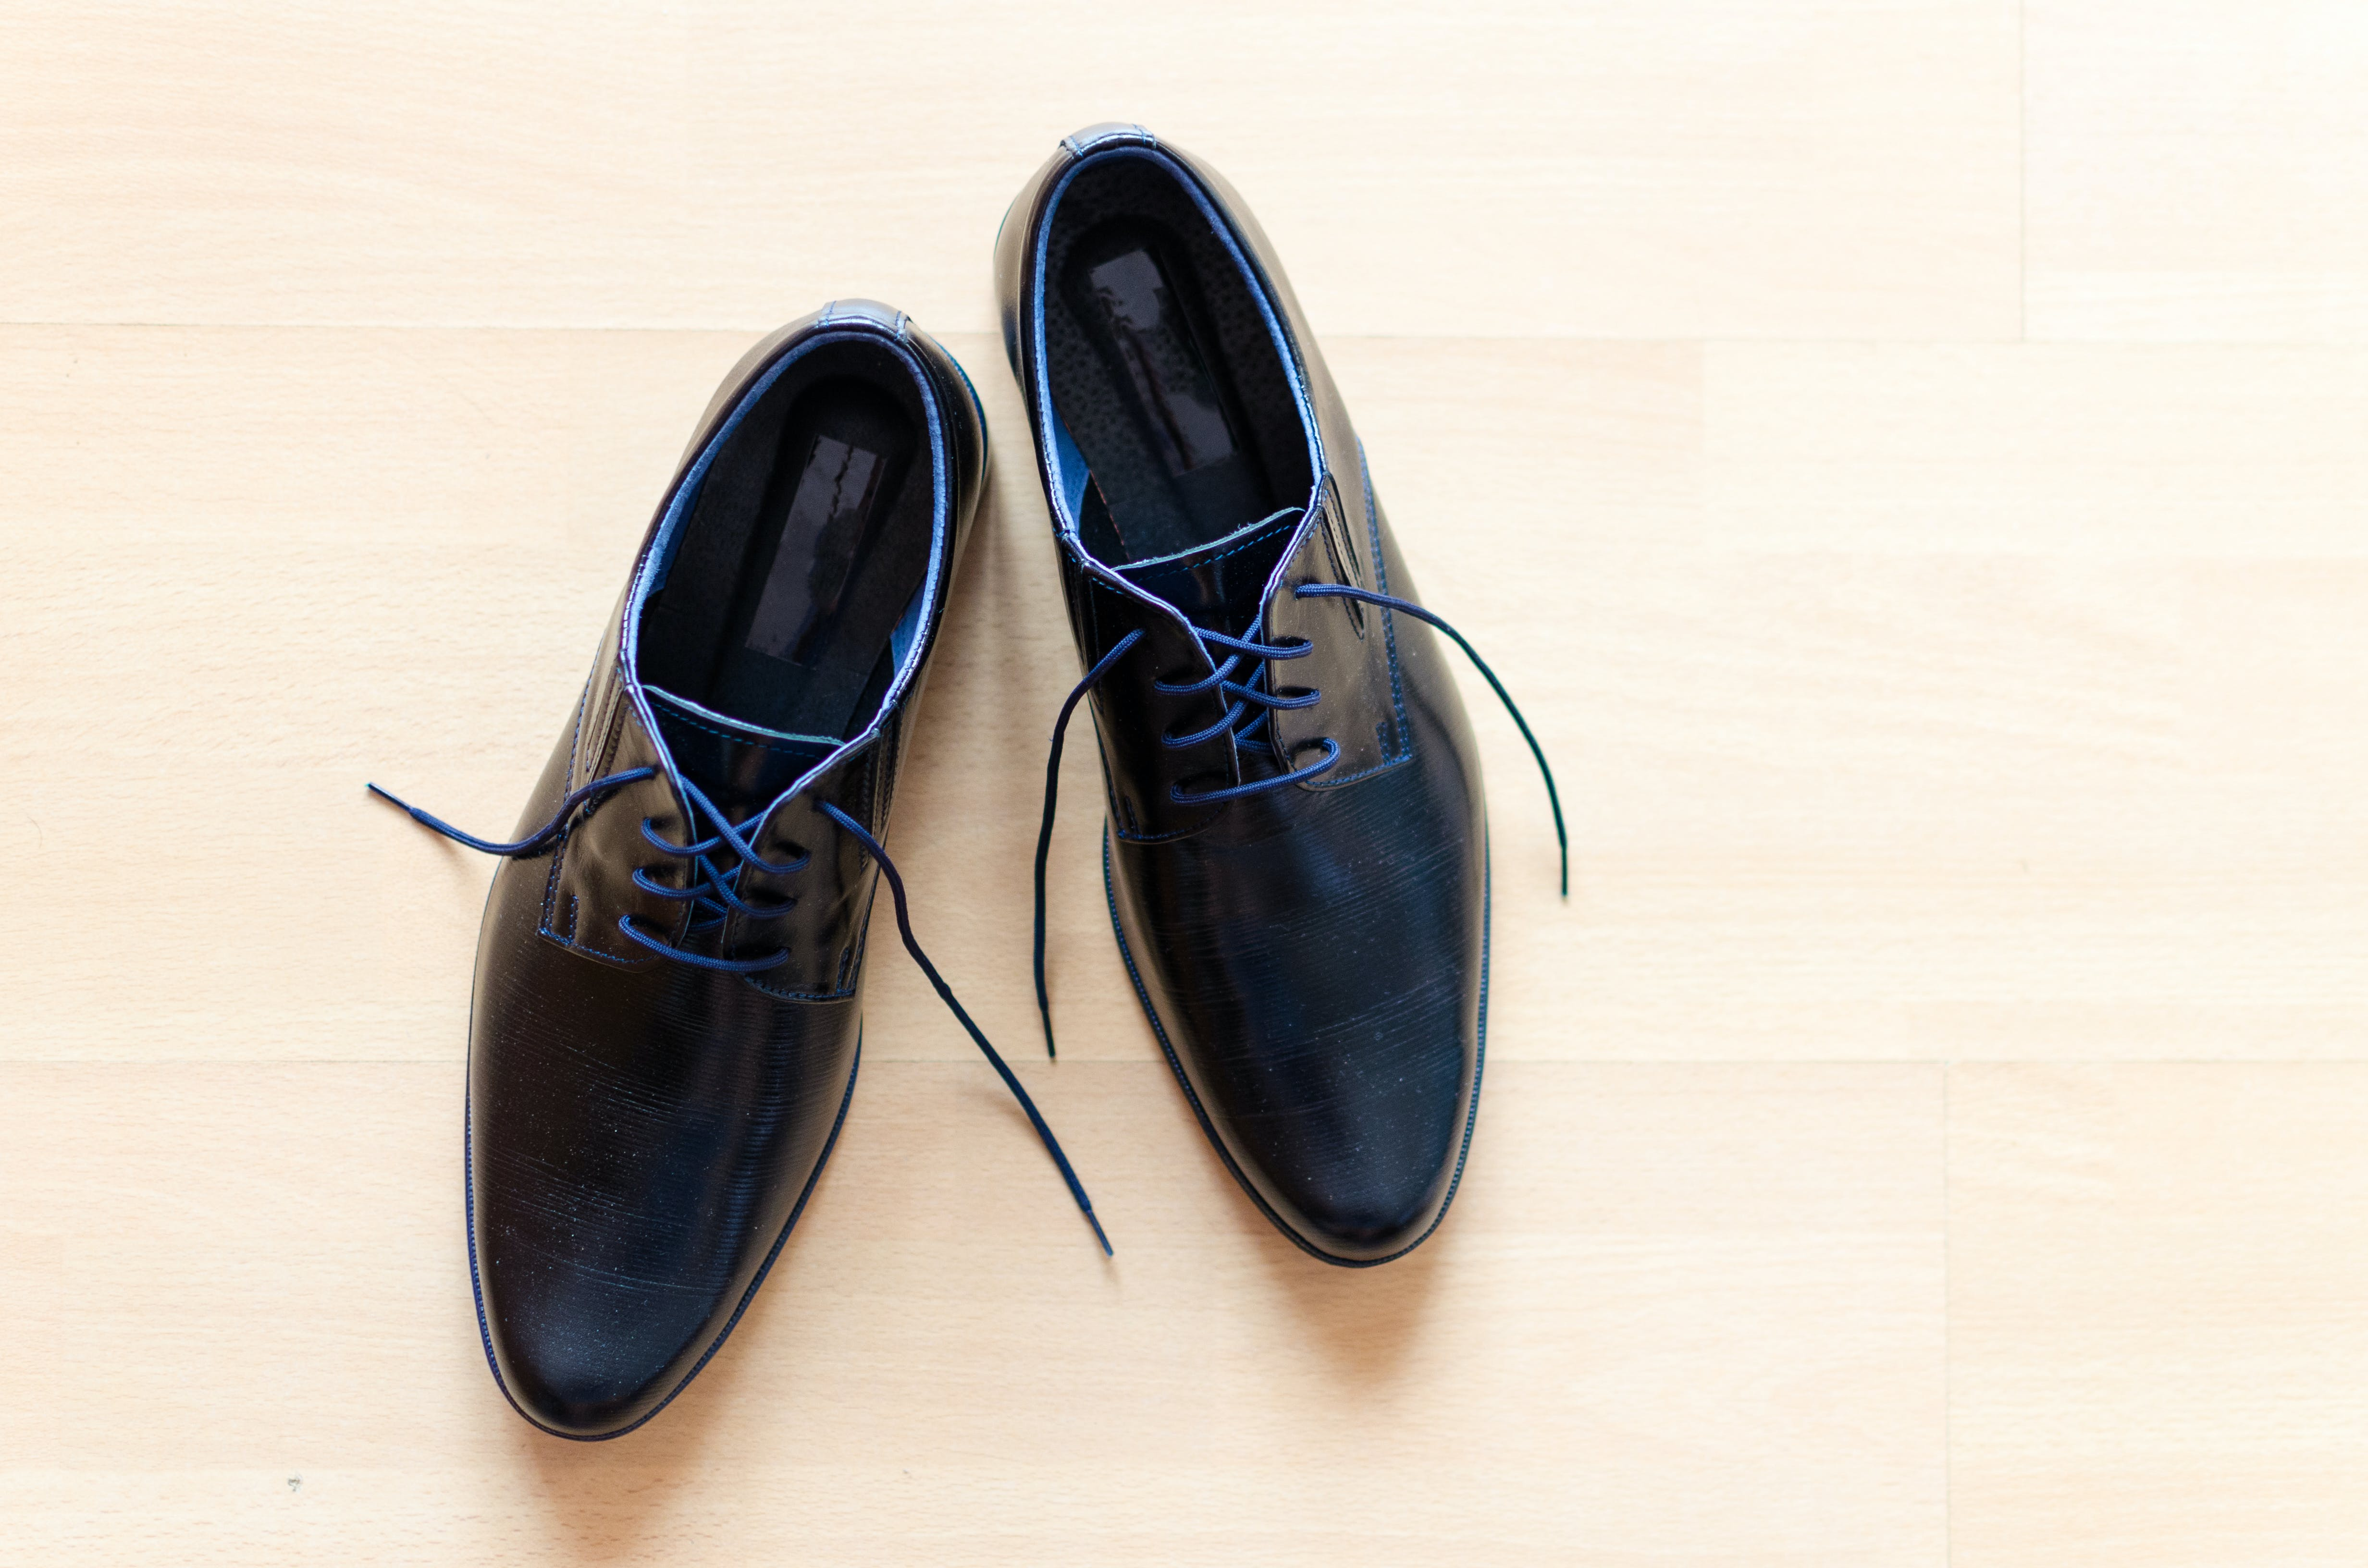 Pair of Black Leather Derby Shoes Placed on Brown Surface